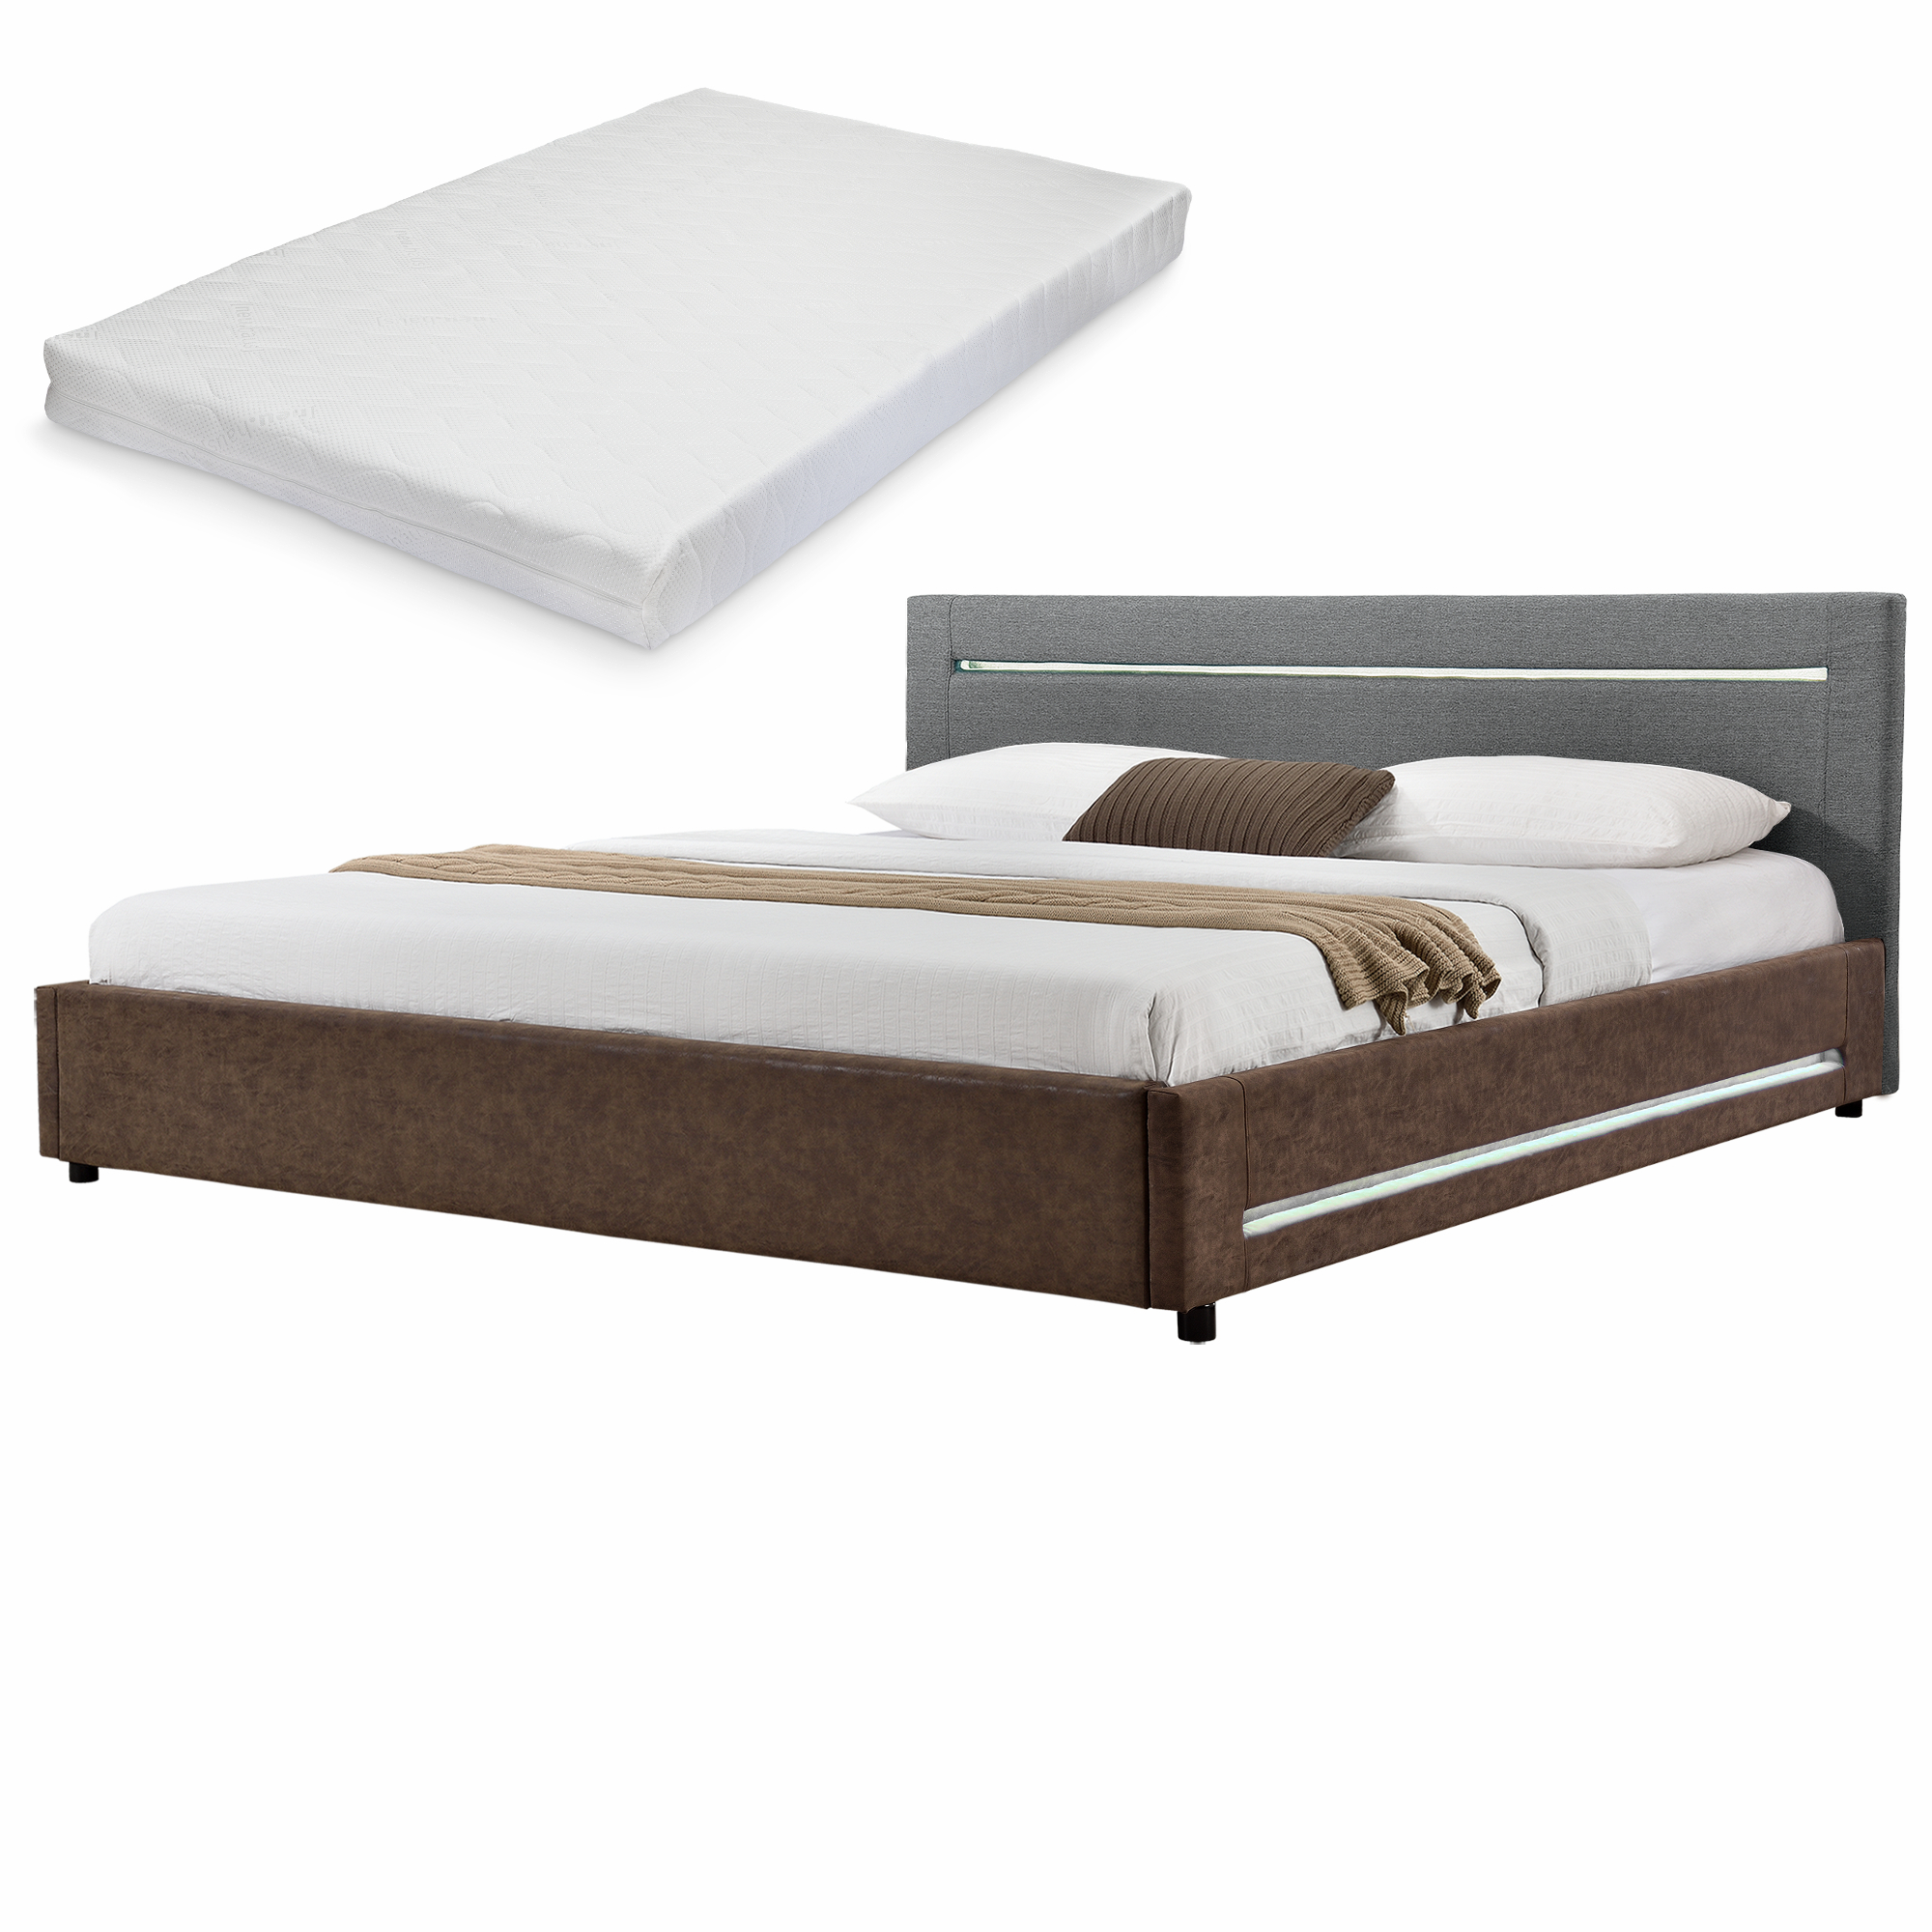 My Bed Led Polsterbett Matratze 180x200cm Grau Braun